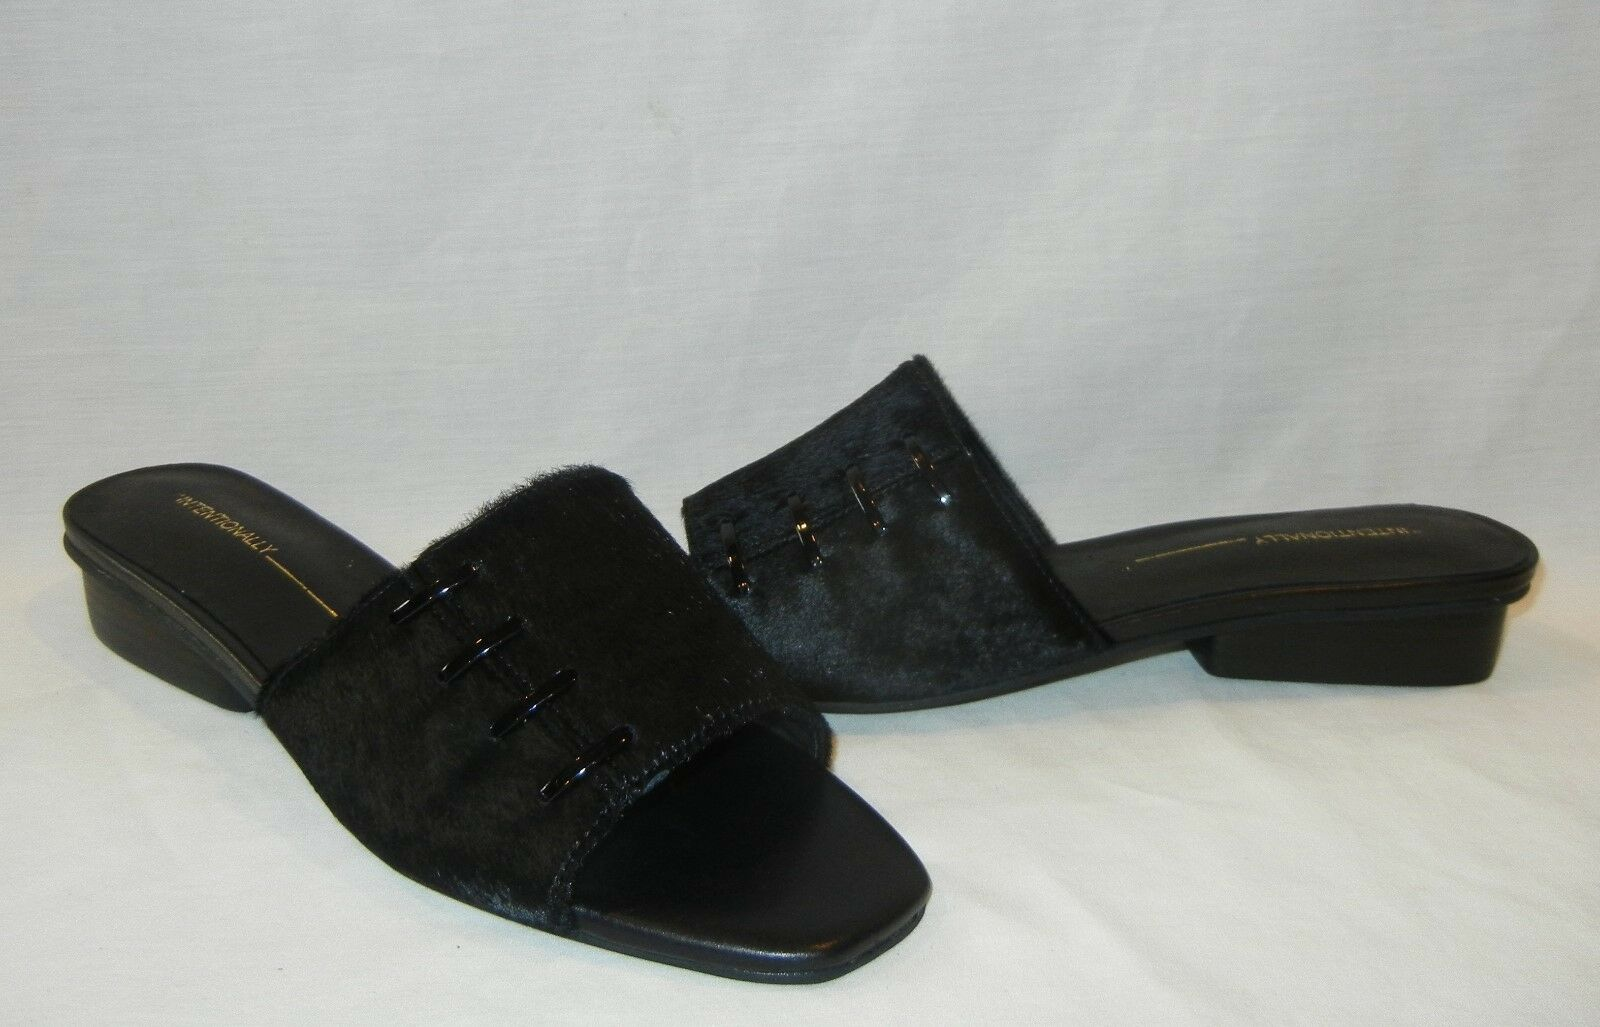 Intentionally Blank Women's Talk Leather Flats Slides Retail  180 size 9